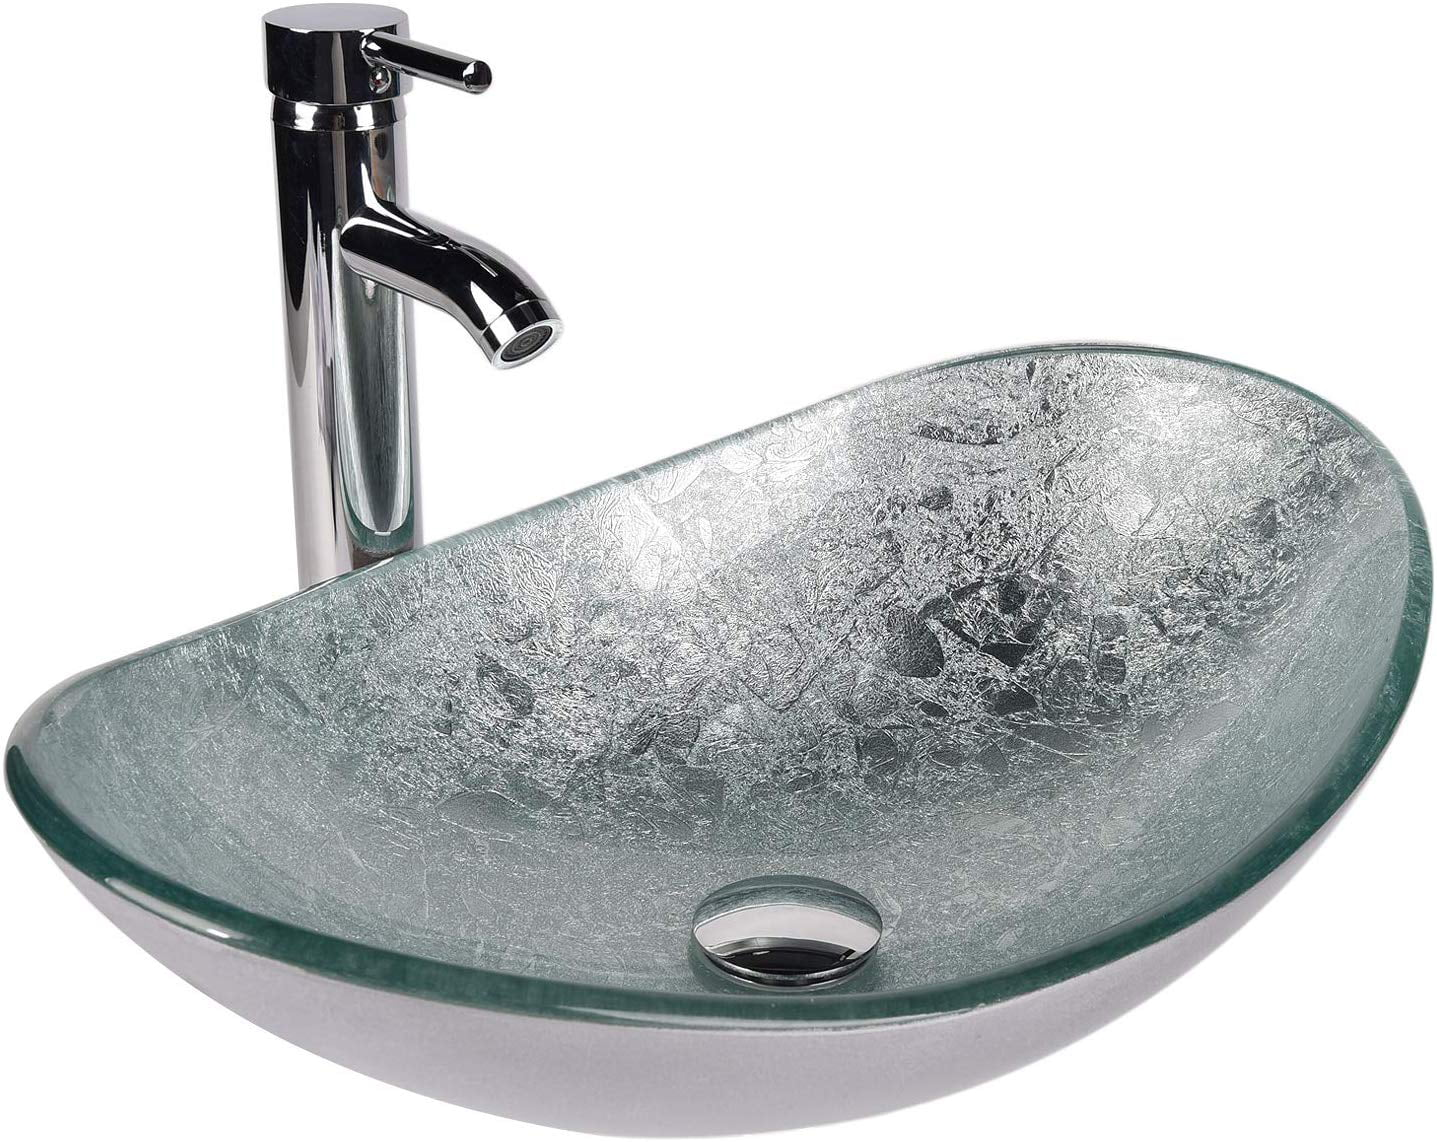 elecwish bathroom sink and faucet combo artistic tempered glass vessel sink basin washing bowl set cabinet countertop sink with chorme faucet pop up